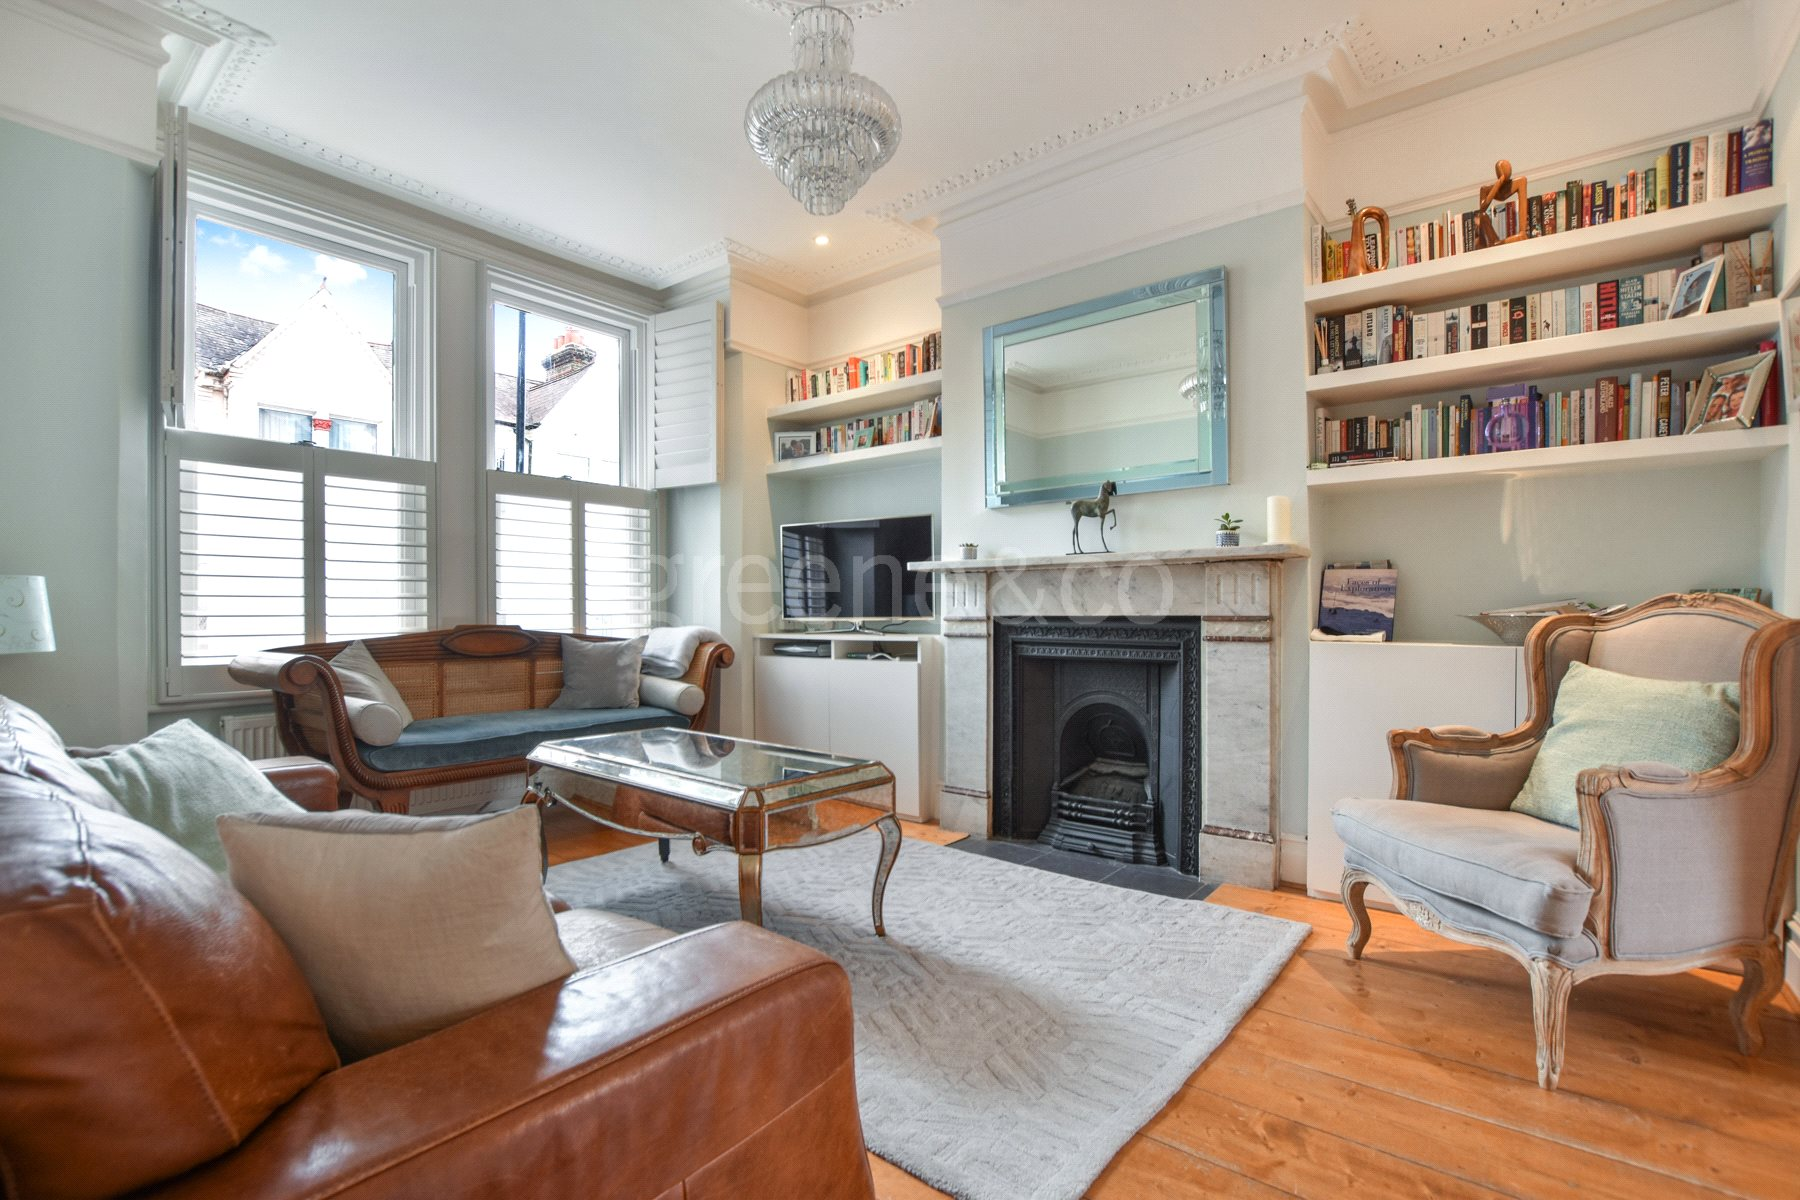 5 Bedrooms Terraced House for sale in Kingsley Road, Queens Park, London, NW6